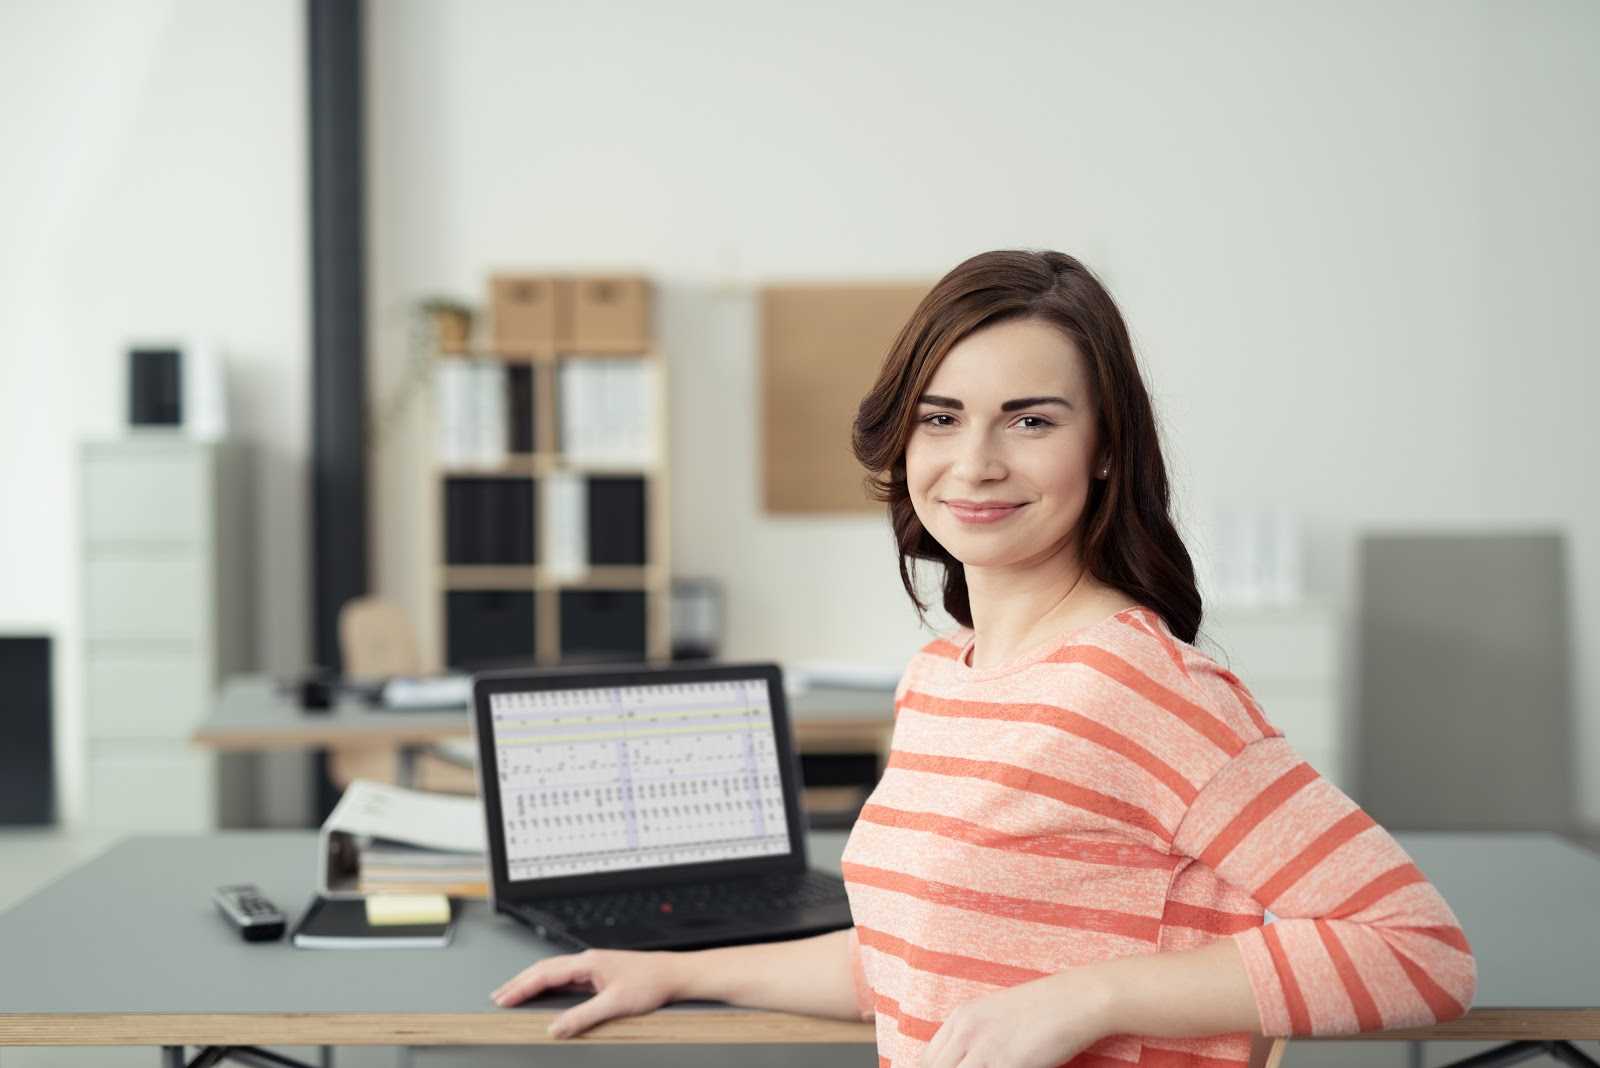 Woman looks for paid internships online